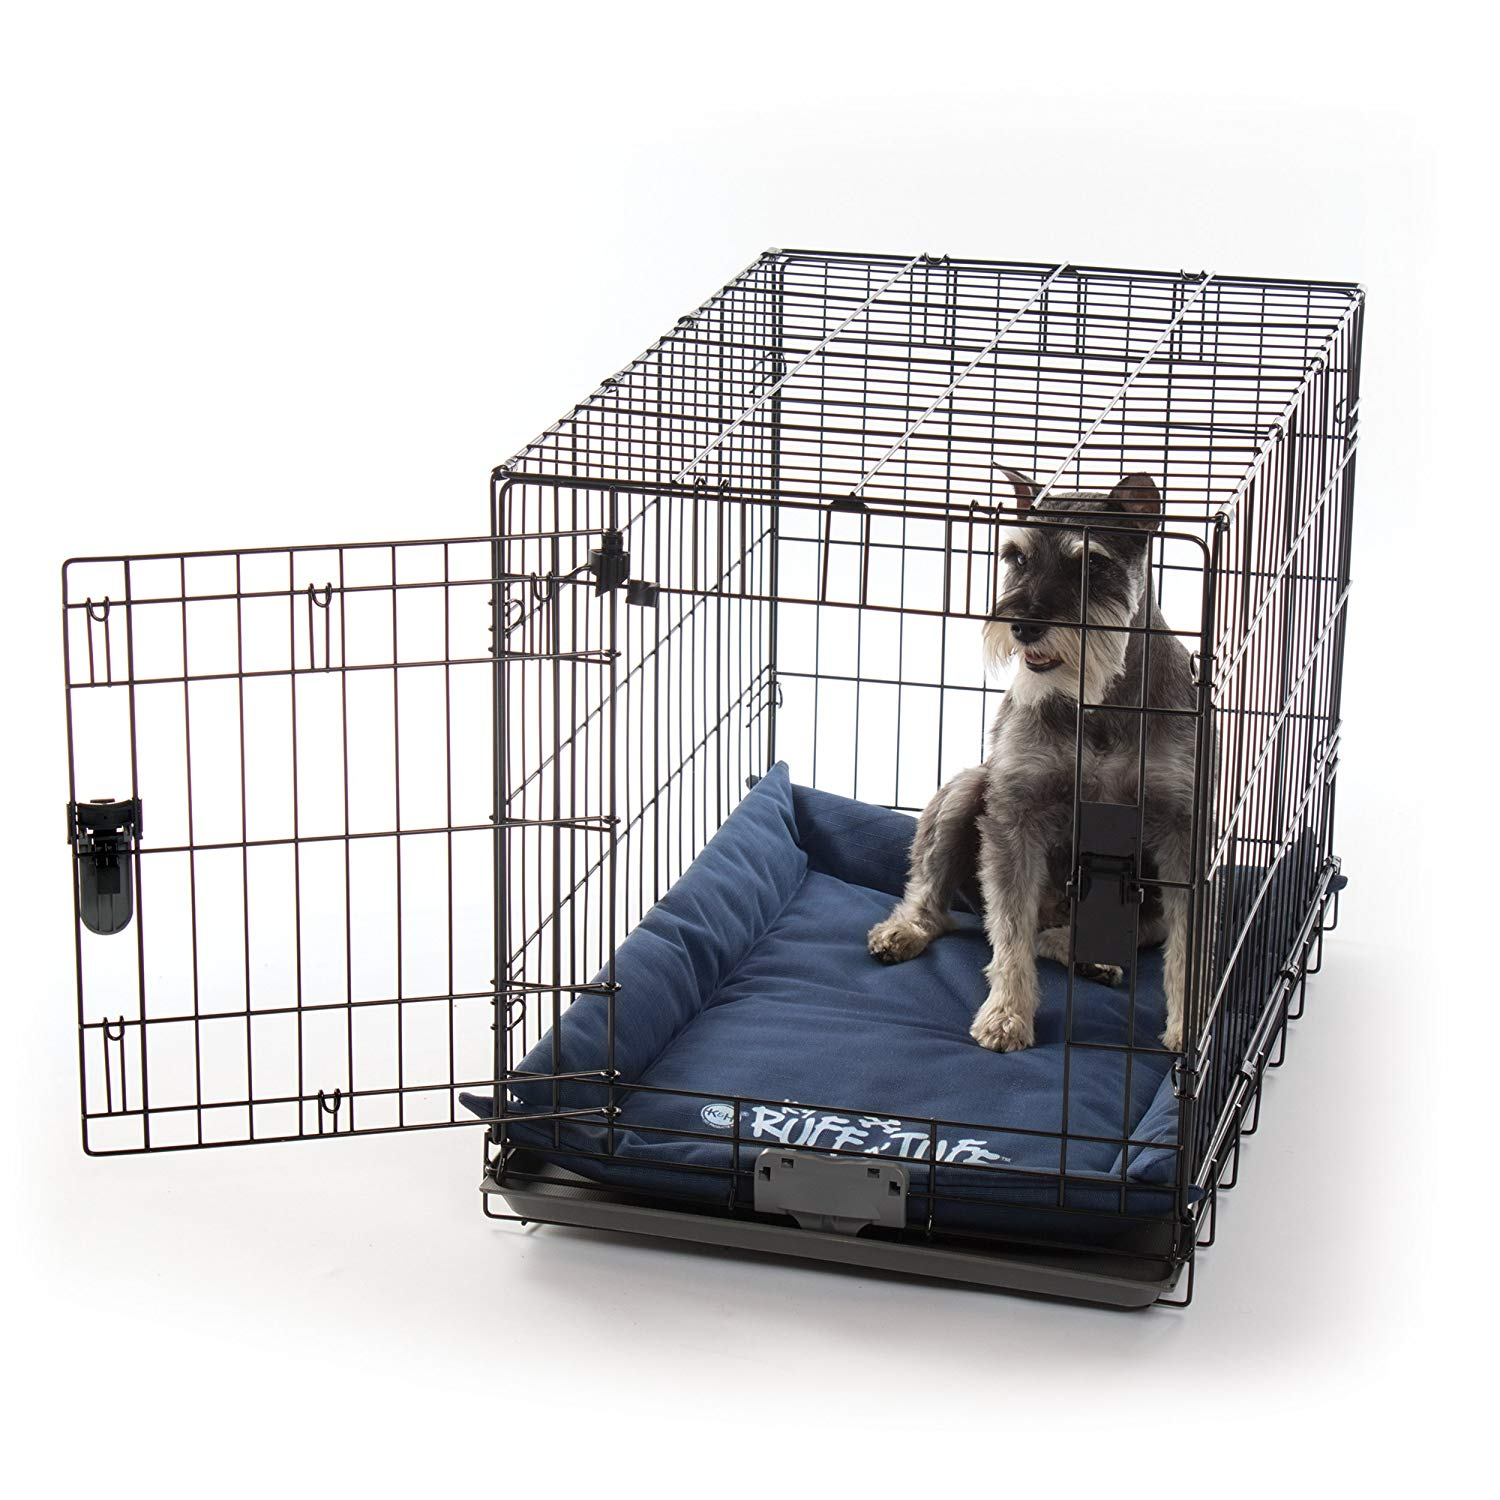 "K&H Pet Products K-9 Ruff n' Tuff Crate Pad Medium Navy Blue (21"" x 31"") - 1260 Denier Rip-Stop Polyester for Pets That Need Extra Tough Fabric"